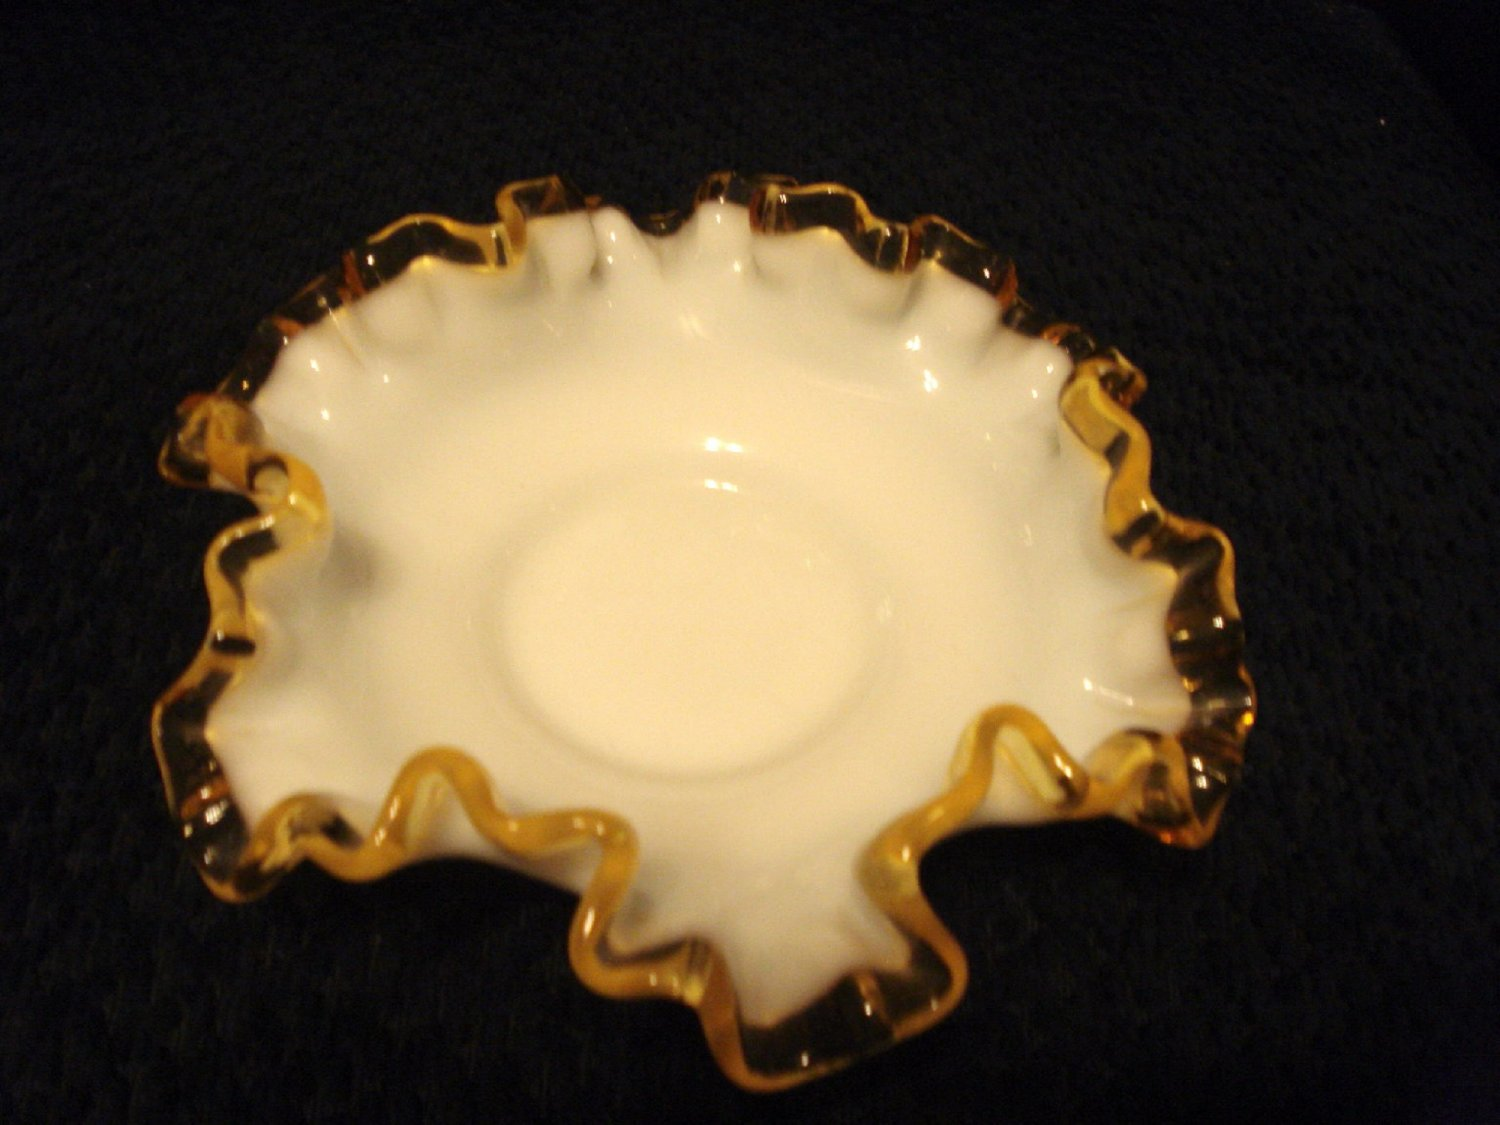 Fenton Milk Glass Gold Crest Small Ruffled Dish 5.5 Inches Dia., made in USA